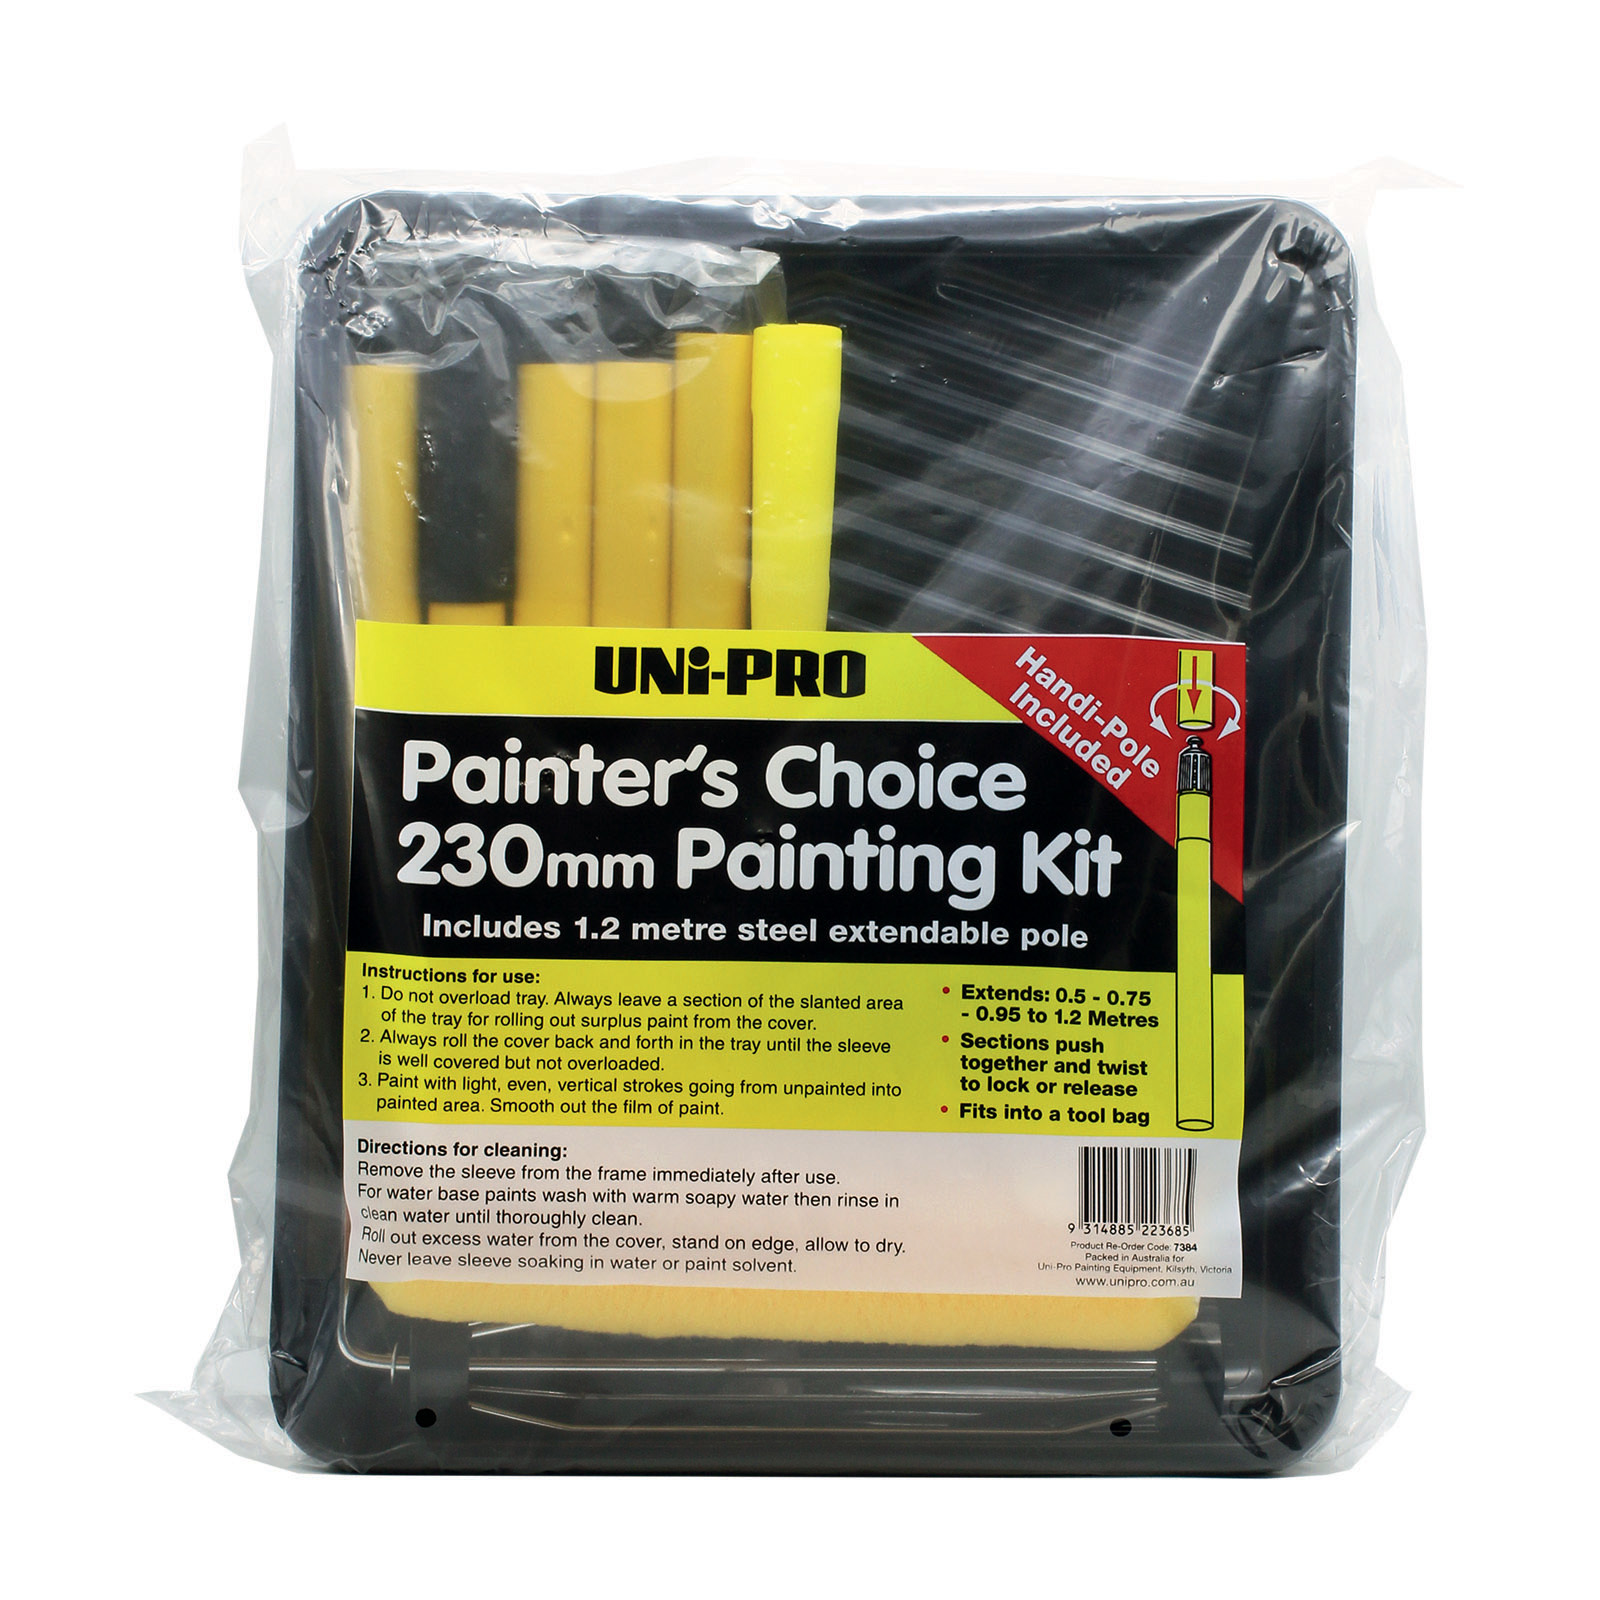 UNi-PRO 230mm Painter's Choice Roller Kit with 5 Section Pole